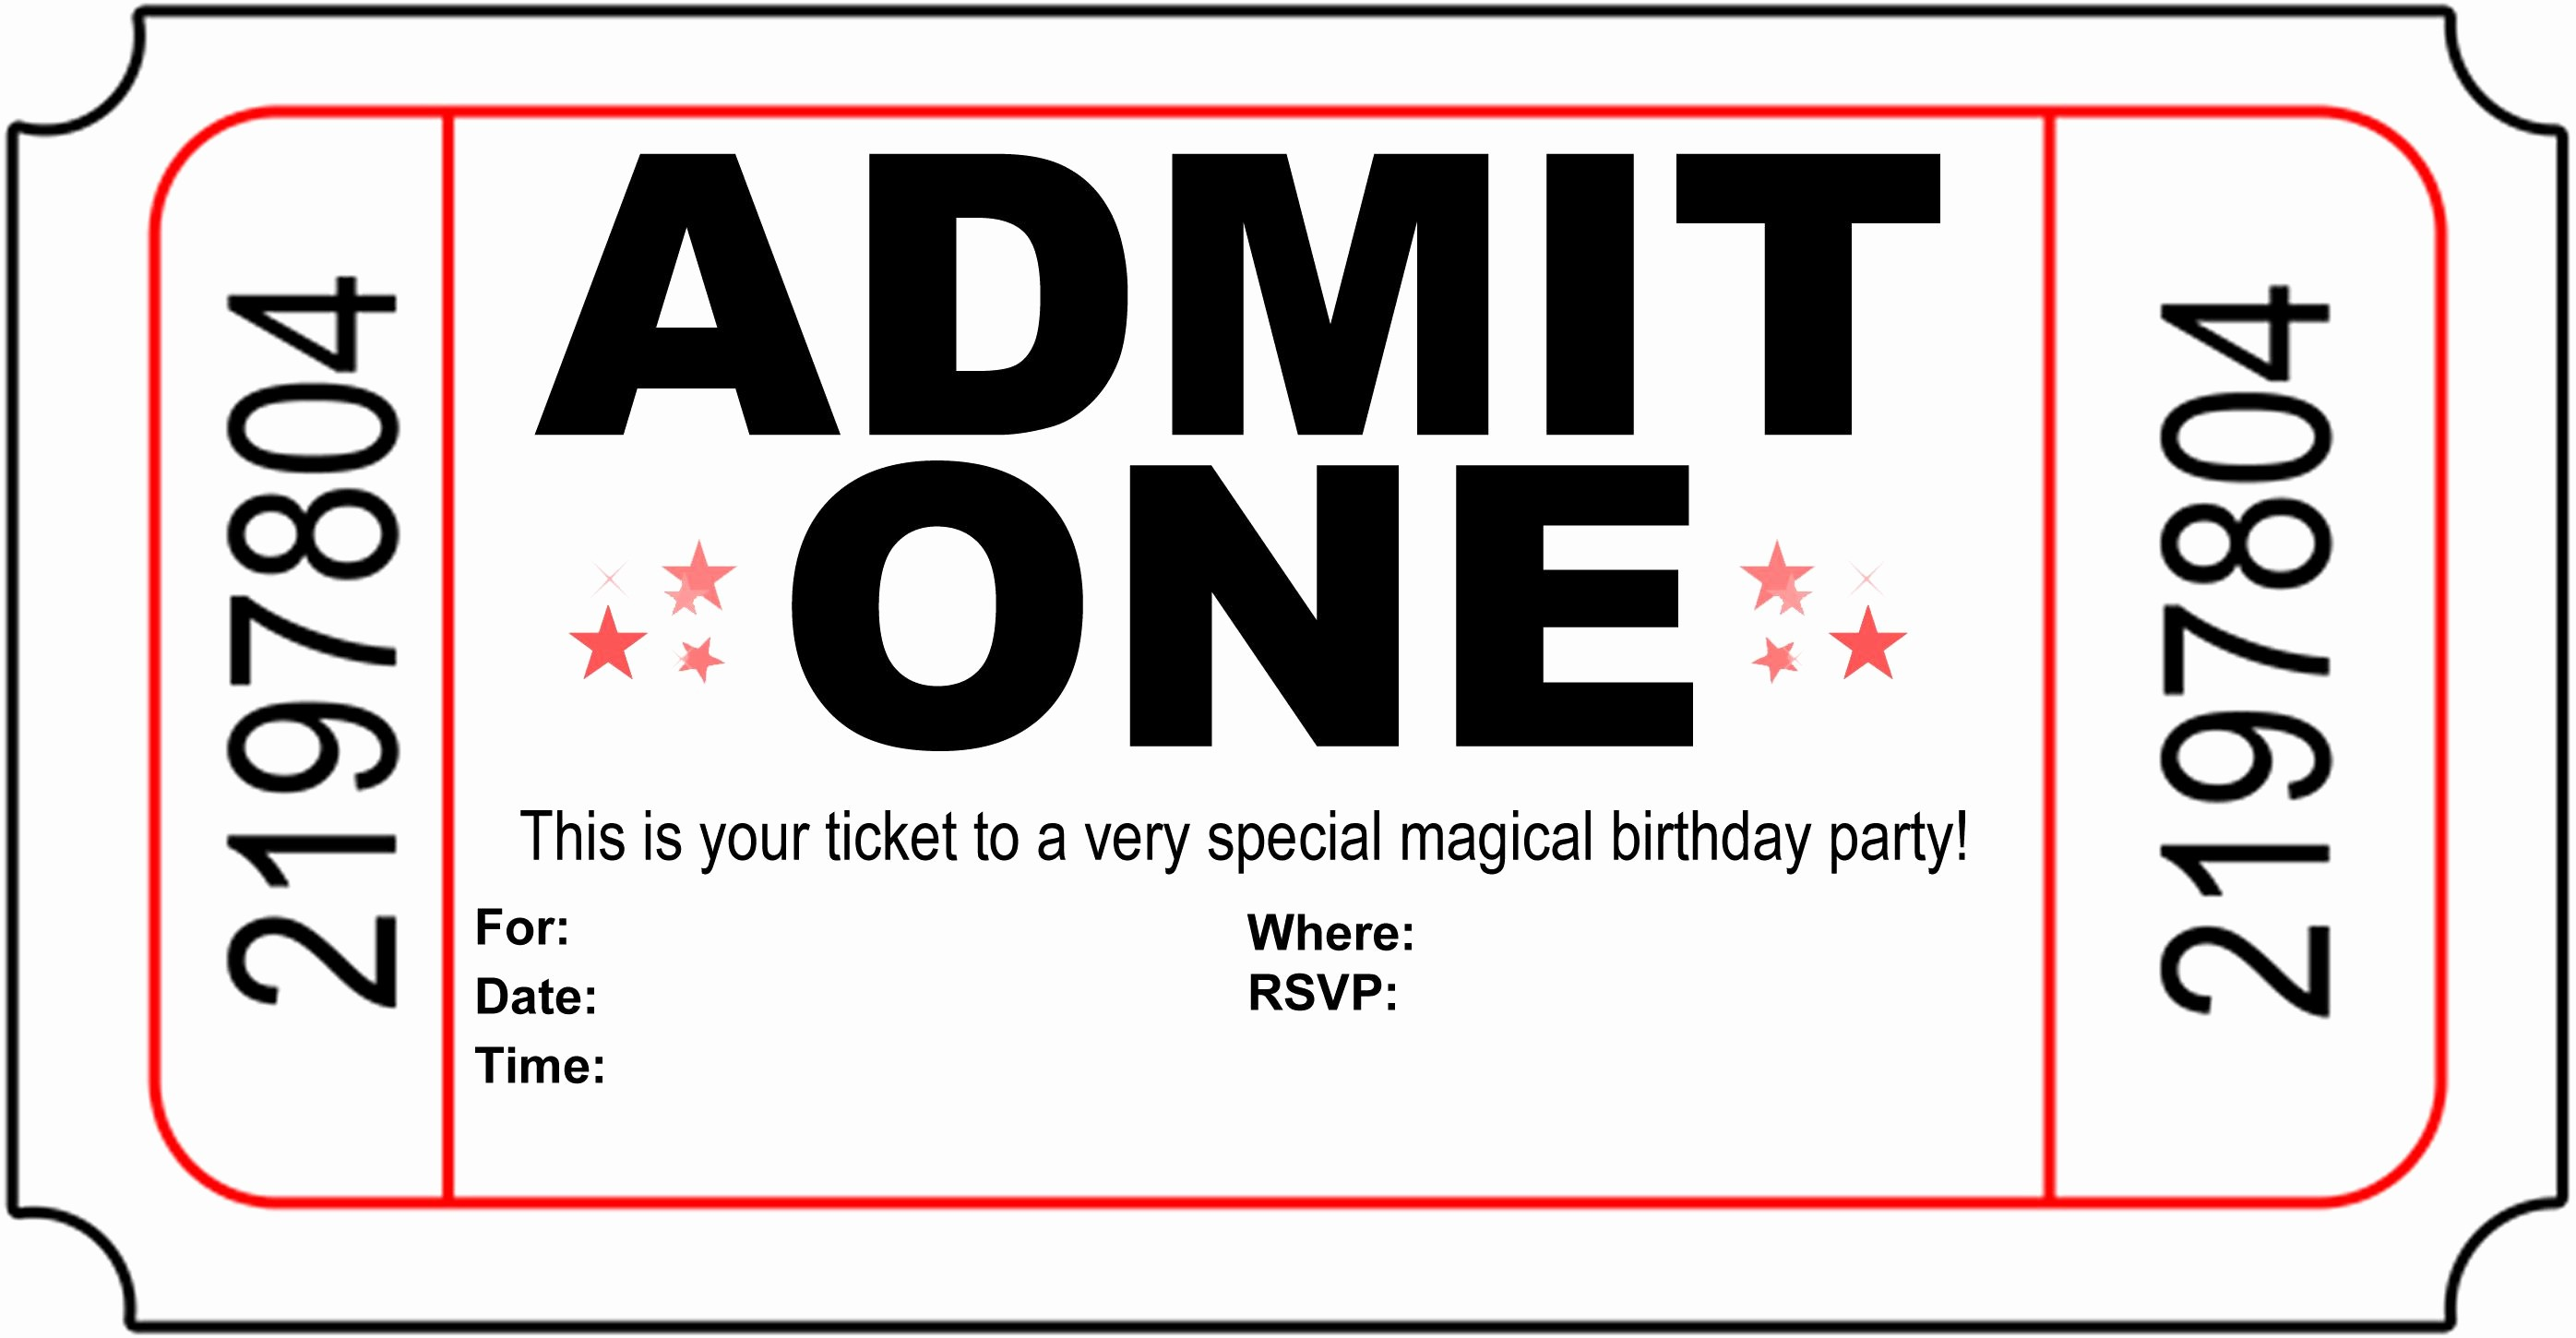 Kids Birthday Party Invites Templates Beautiful Invitation Card for Children S Party © to Owner